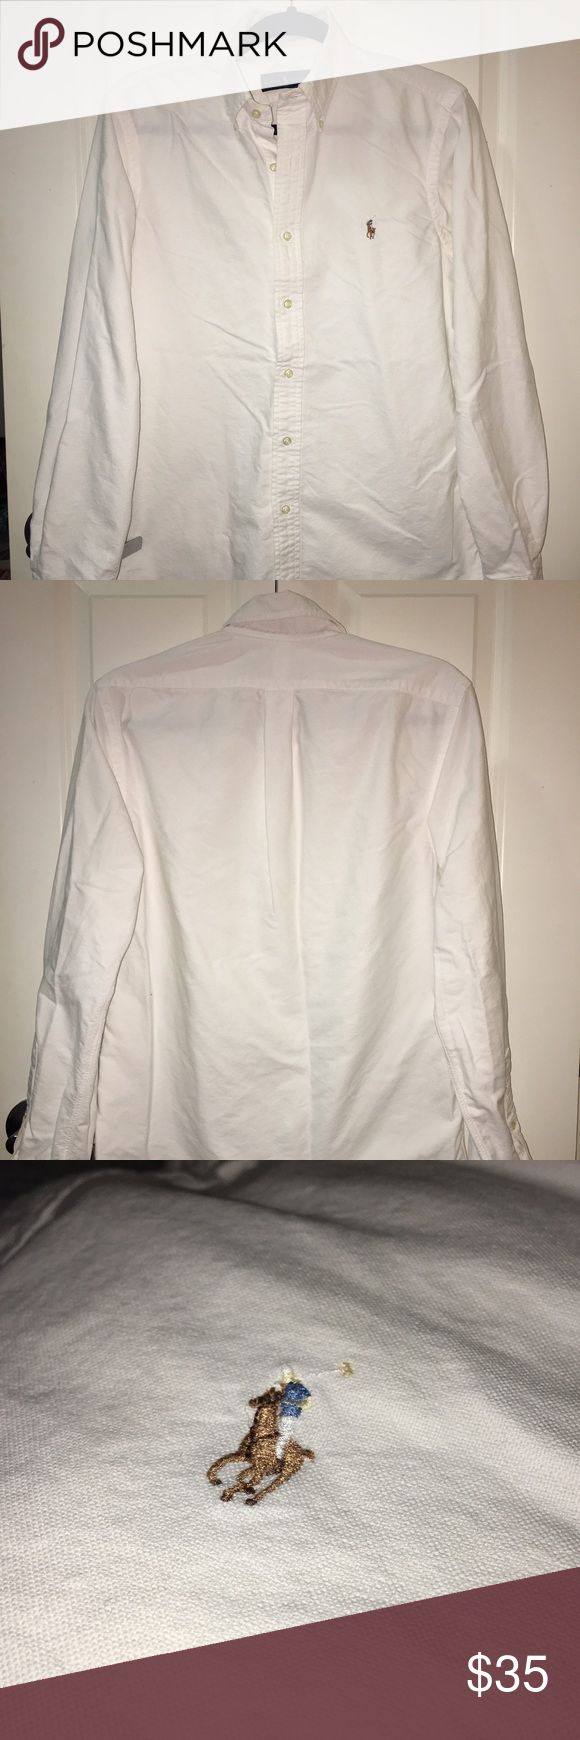 Mens Polo Ralph Lauren Button Down A staple for any man's closet. From Polo Ralph Lauren Factory Store. Fits like a medium. Excellent condition. (Worn 4-5 times). Polo by Ralph Lauren Shirts Casual Button Down Shirts